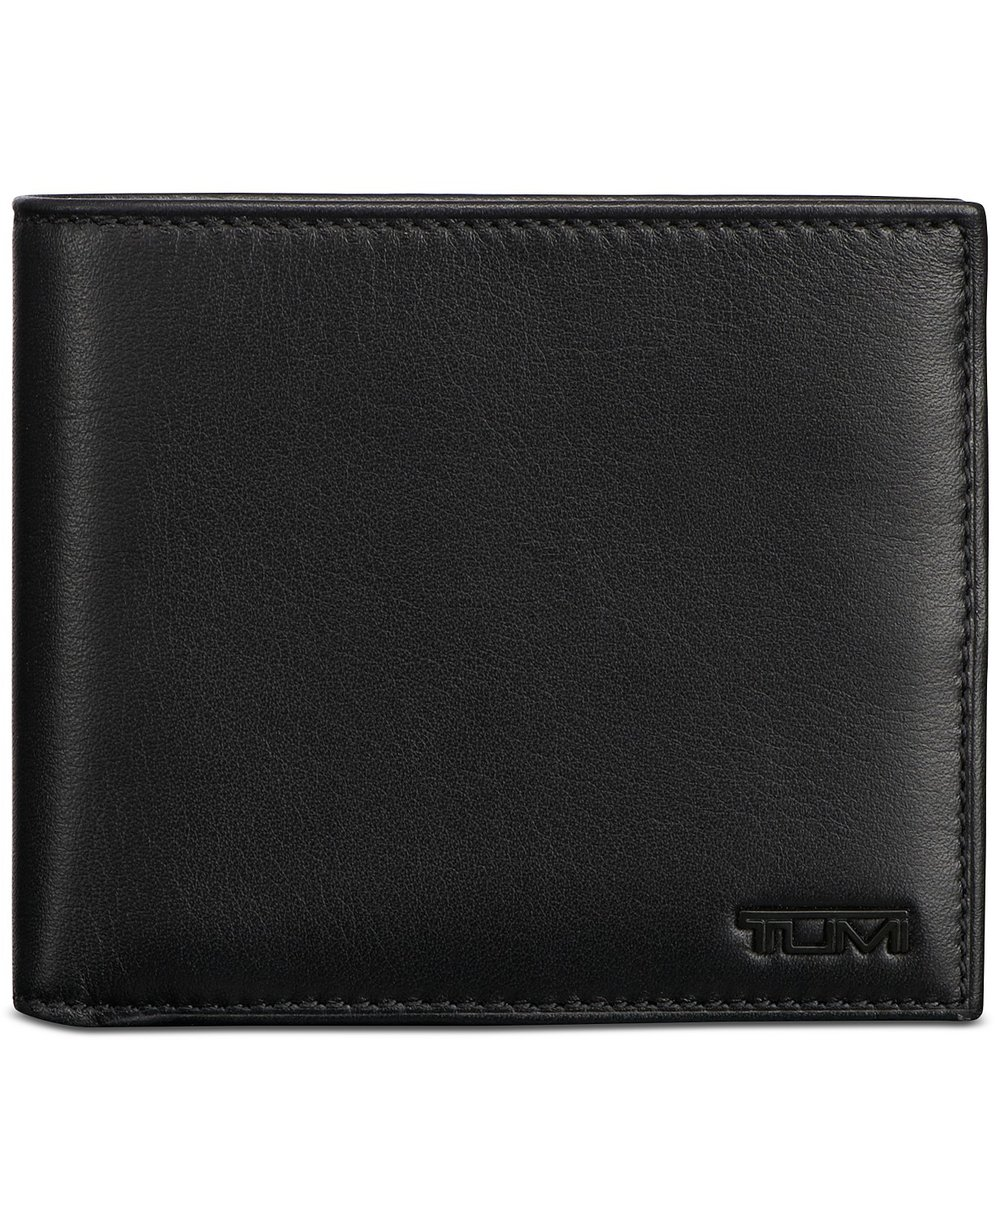 - 2. Global Leather Passcase Wallet, TUMI, Nordstrom, $165Is your dad the type to use a wallet until it falls apart? Mine is! So this year I am helping him, help himself by getting him a new wallet! And this TUMI wallet is great because it has so many pockets to hold a ton of cards, cash in the back and his ID in the front. You can't go wrong with a nice wallet.